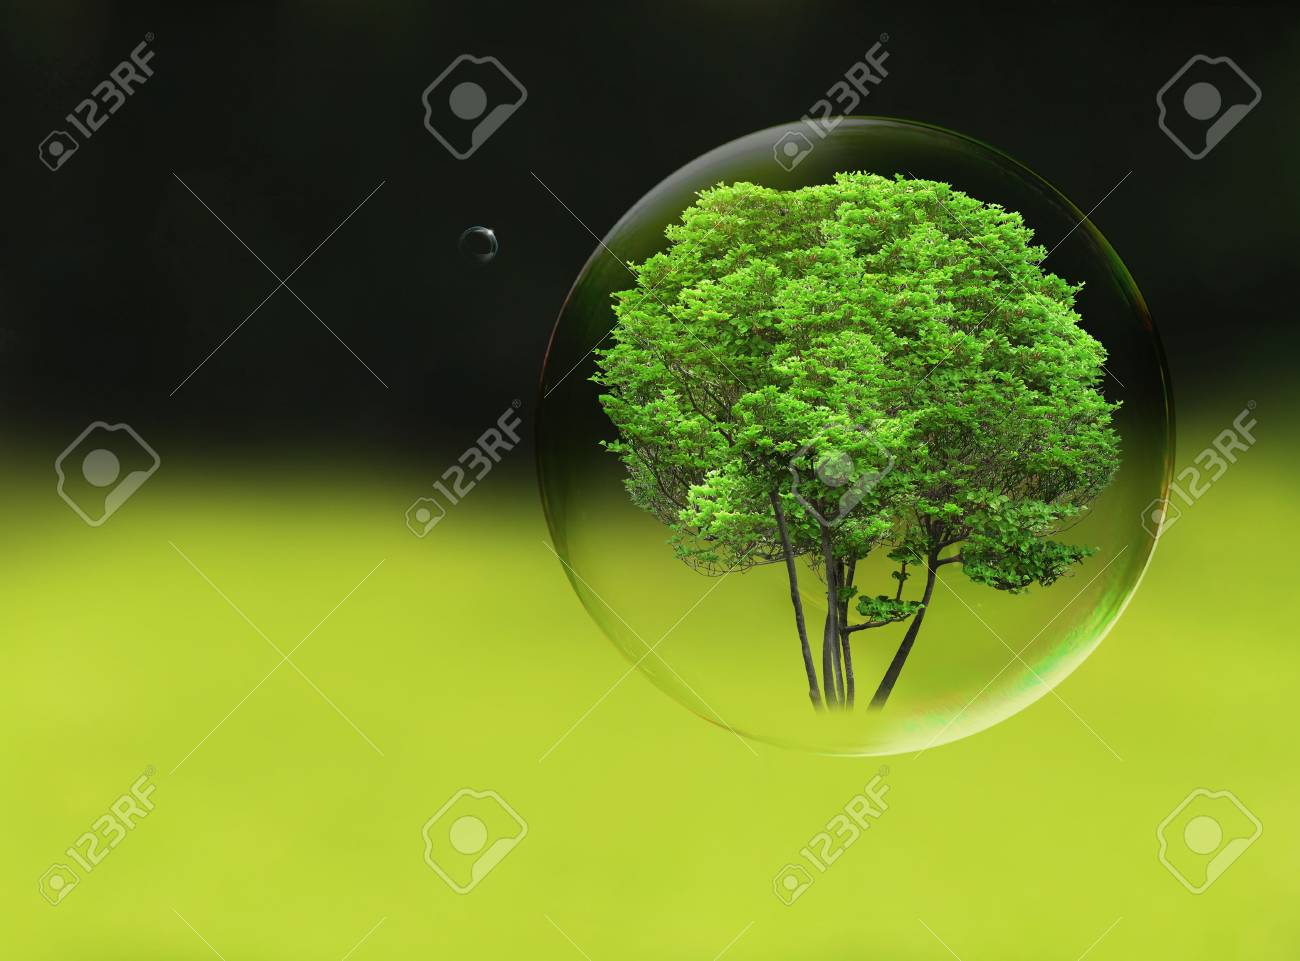 Tree in a bubble, room for text or copy space Stock Photo - 19585930